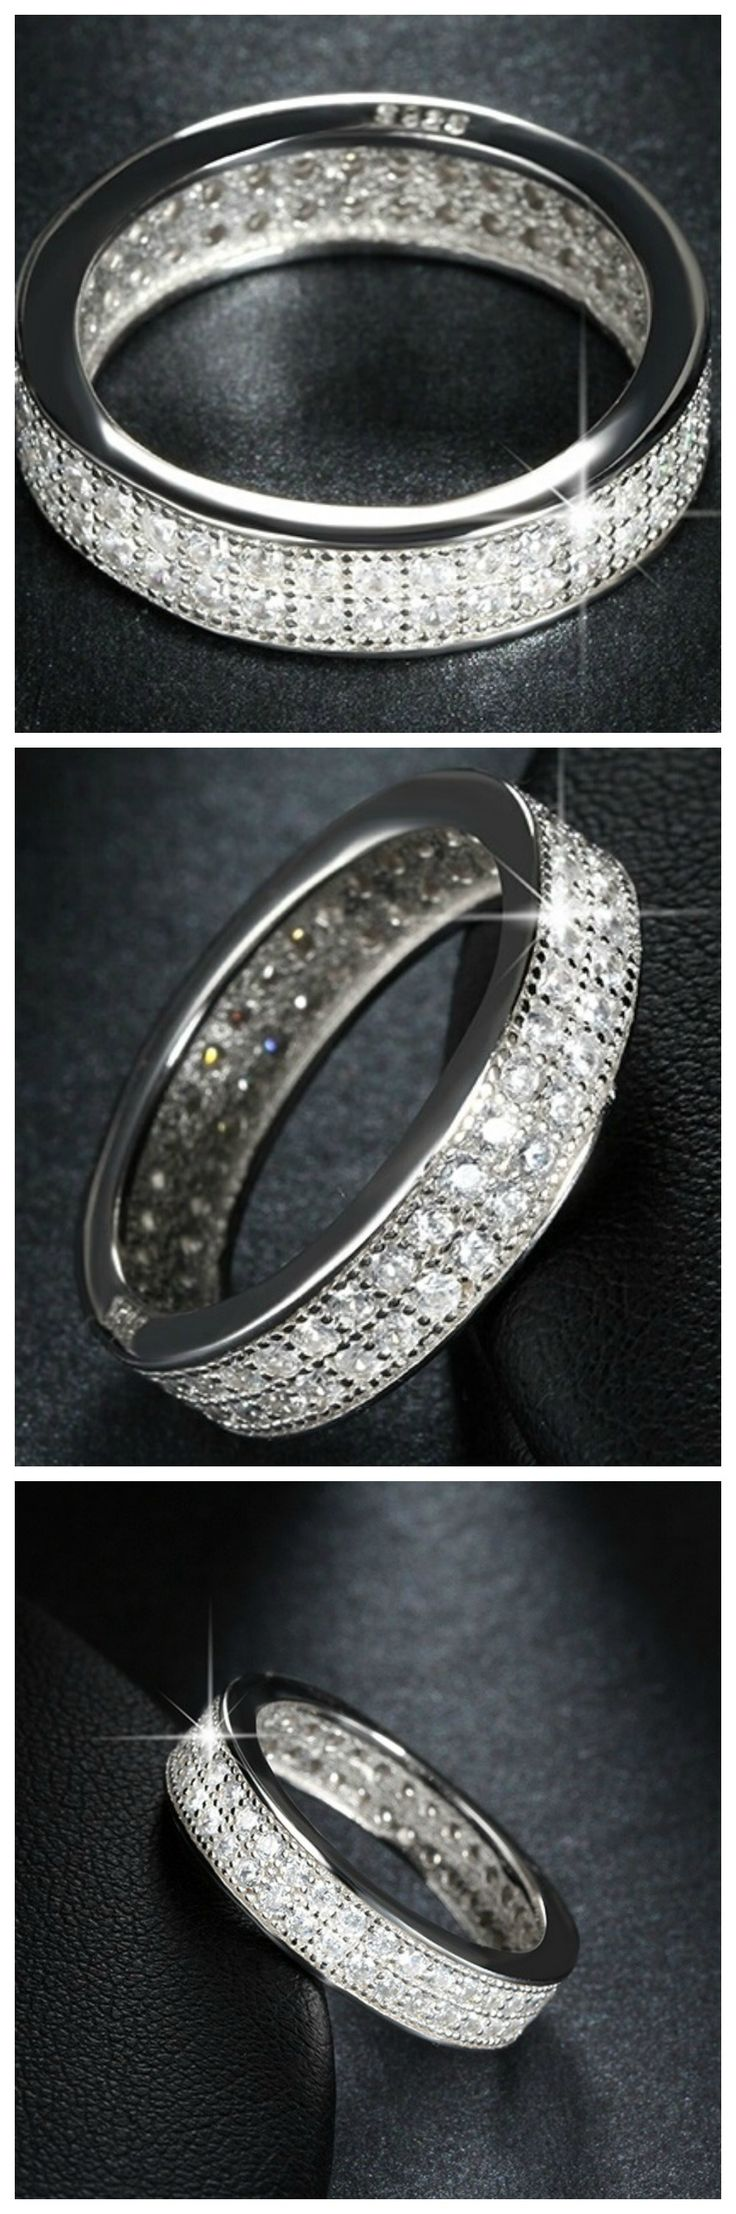 Ziphlets pave eternity ring. Get 10% off with the code ZIPHLETS10